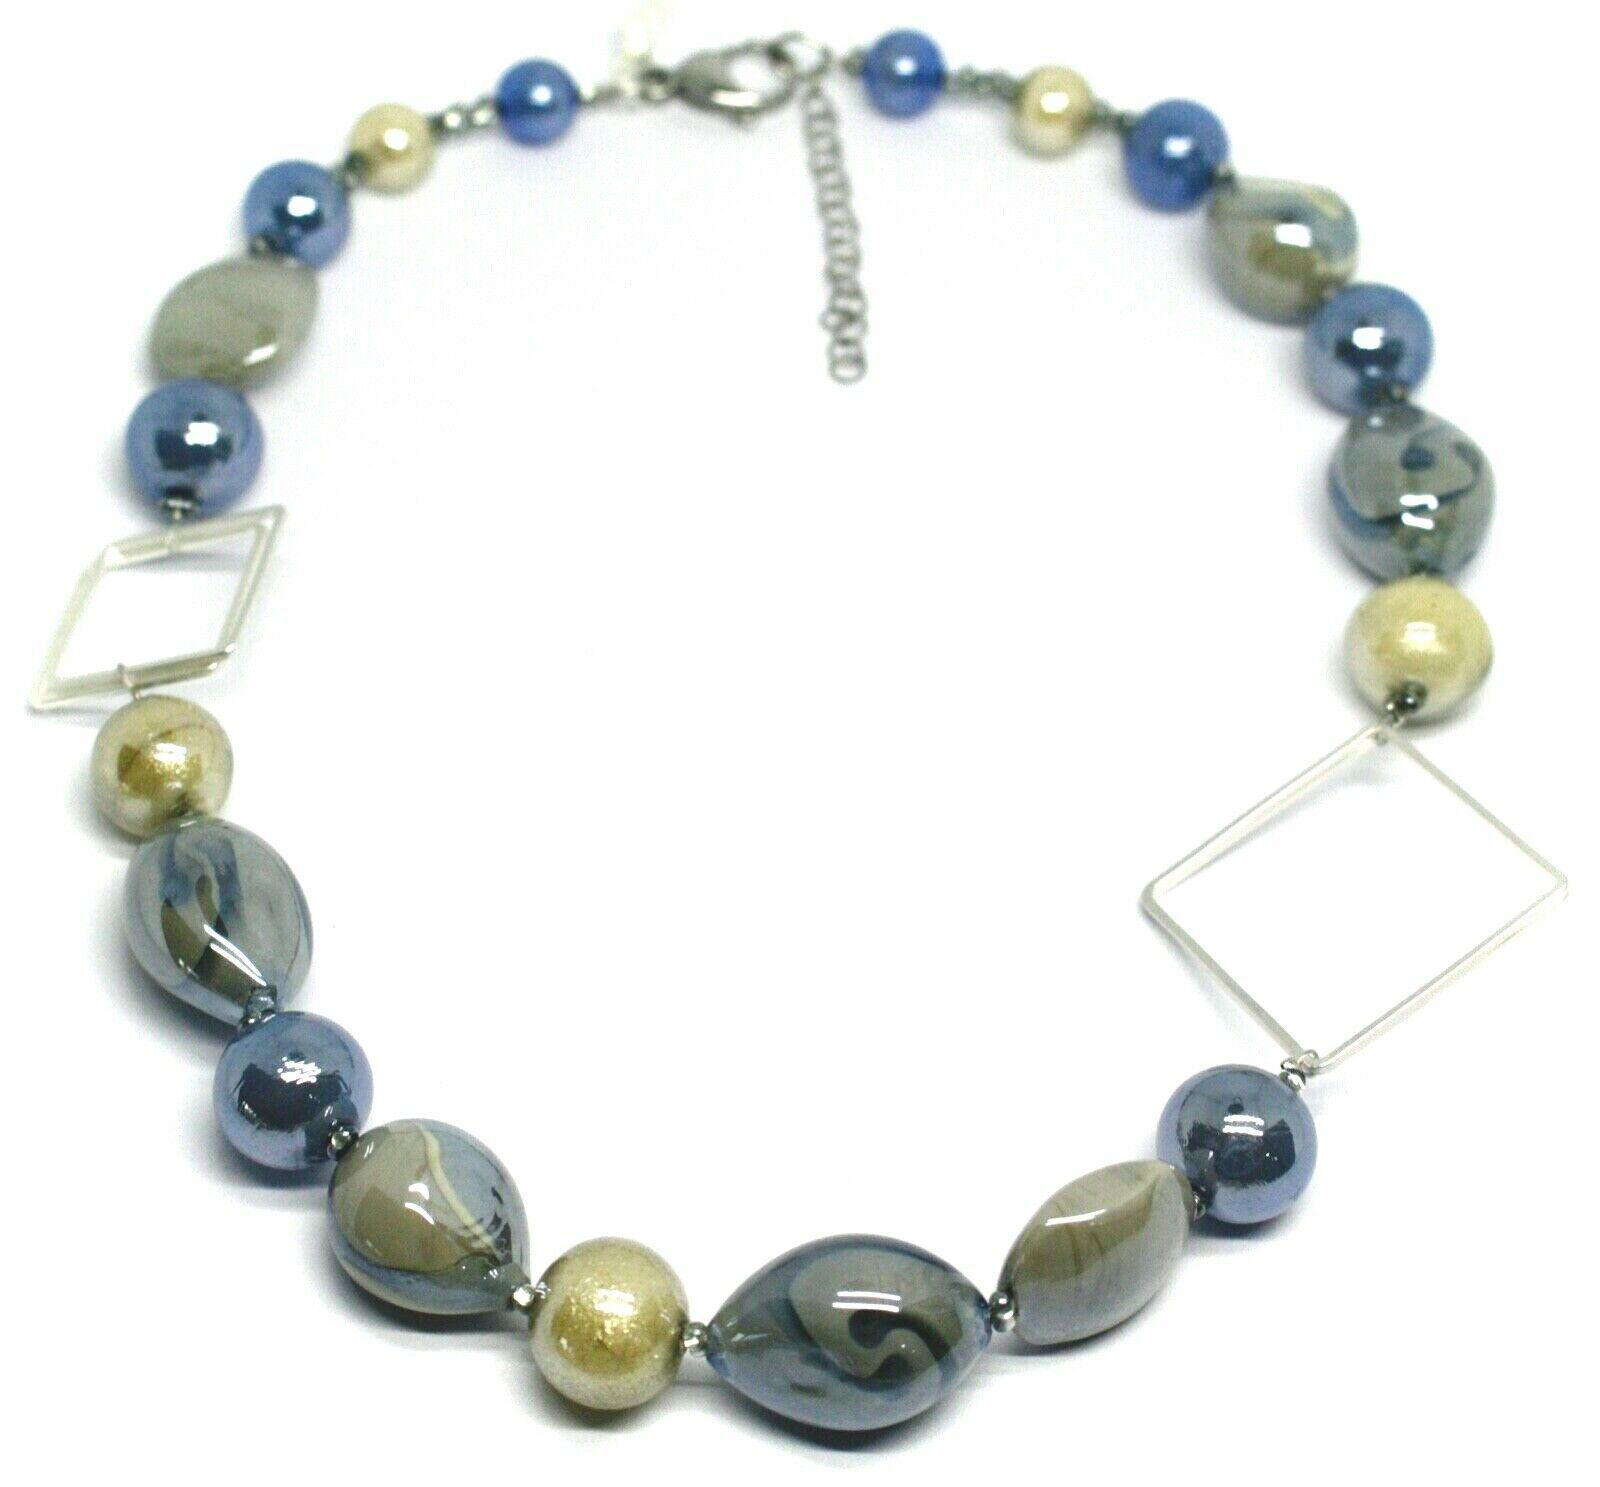 NECKLACE BLUE GRAY ROUNDED DROP, SPHERE, EXAGON MURANO GLASS SQUARE ITALY MADE